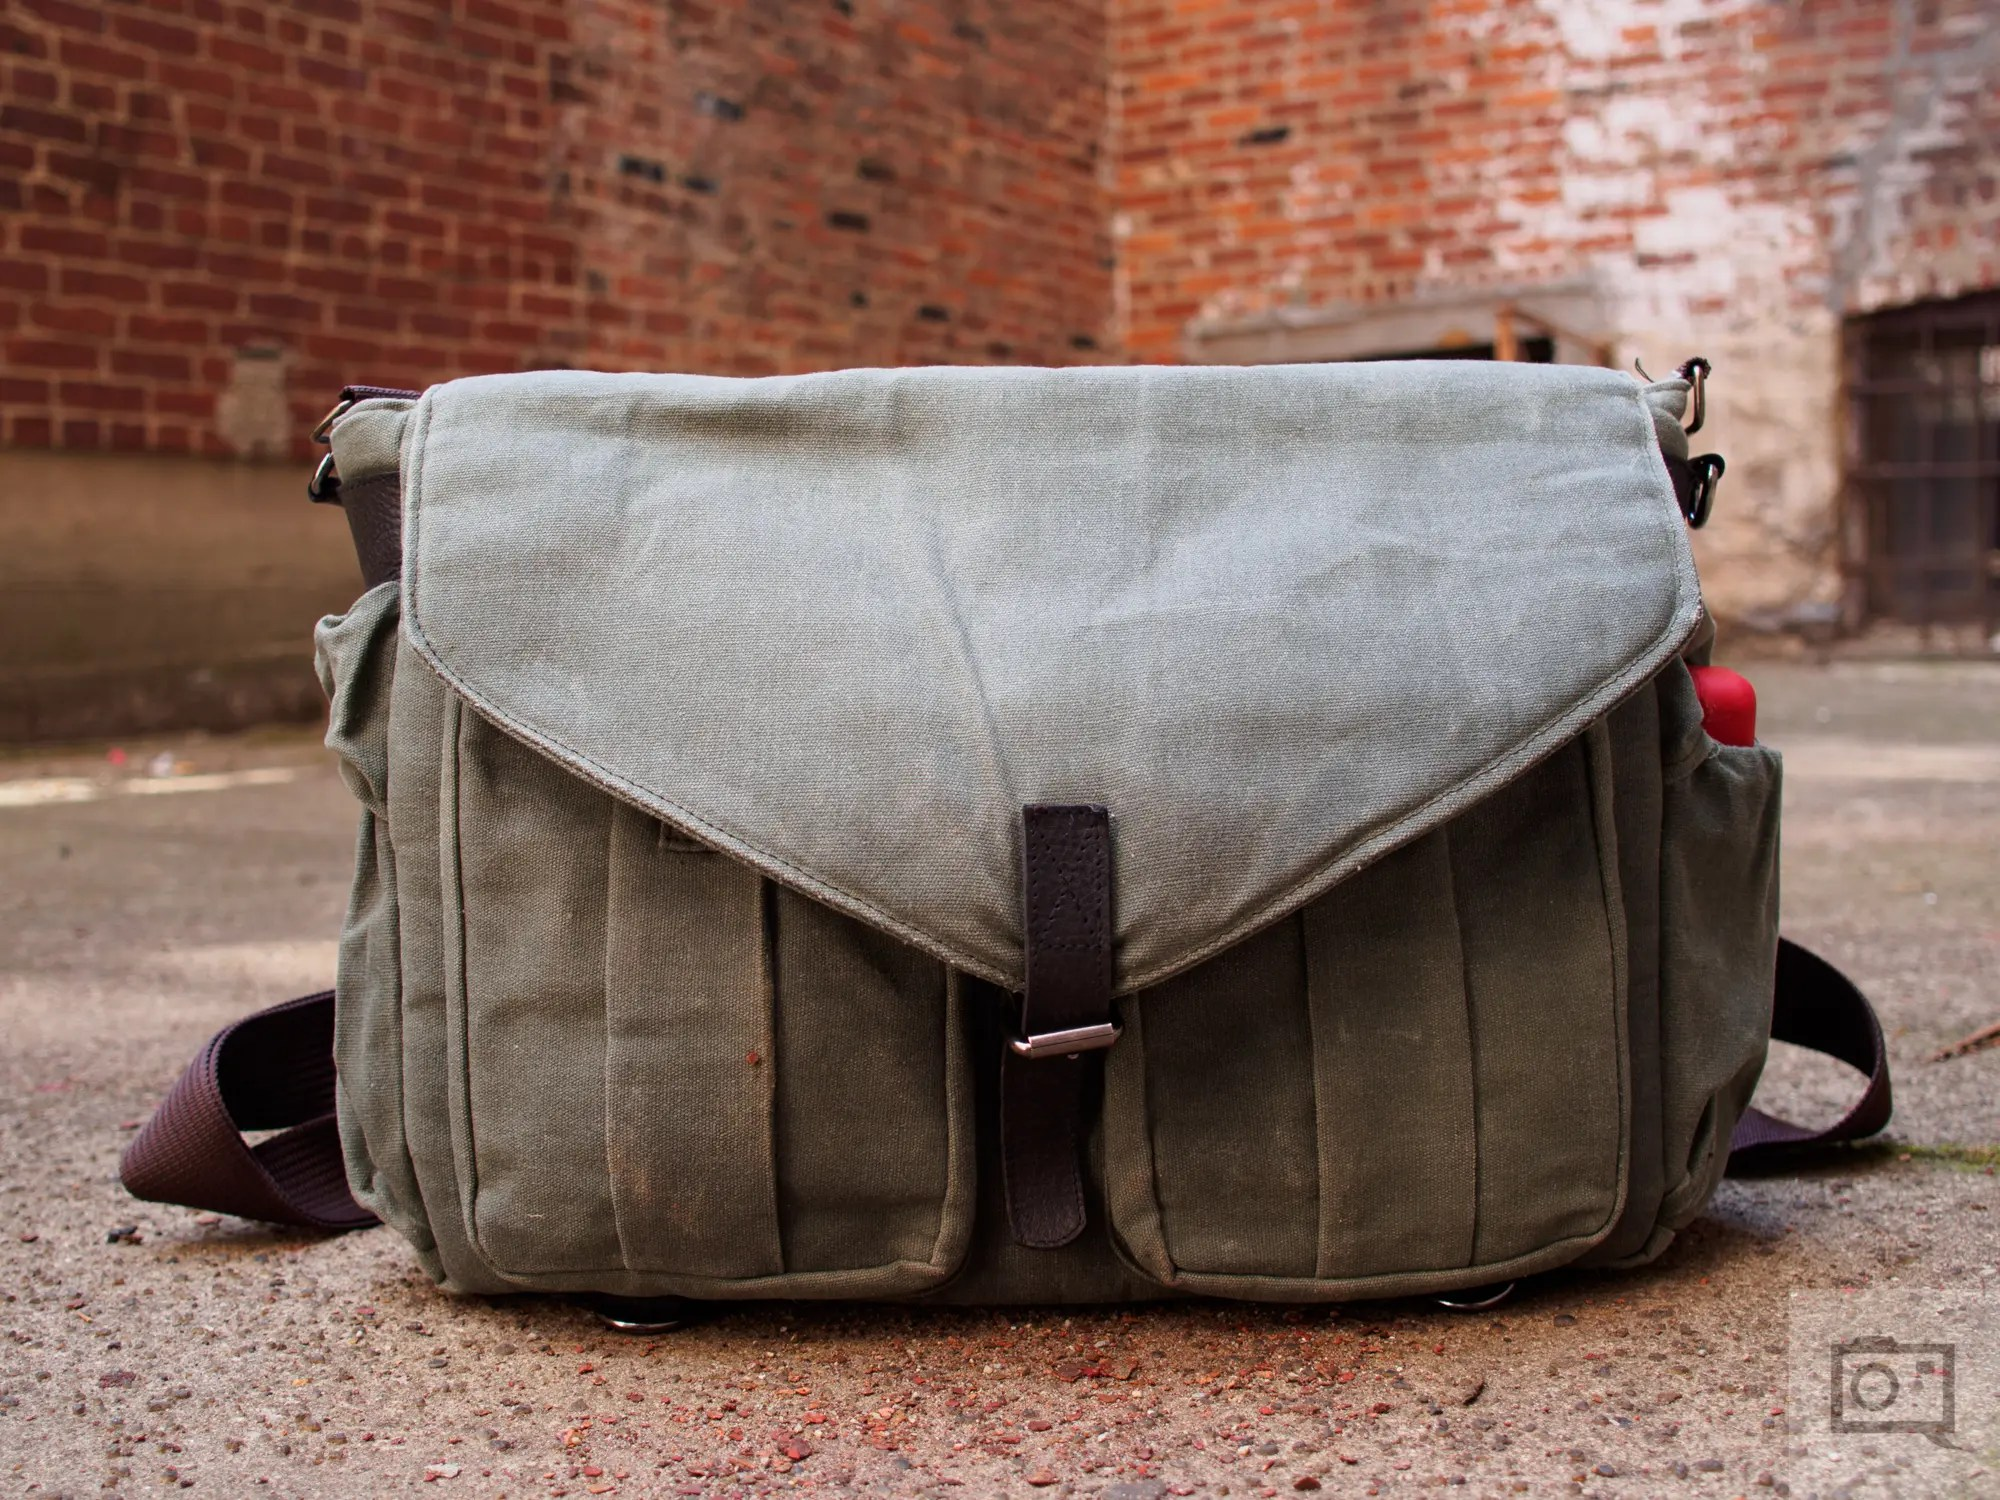 Chris Gampat The Phoblographer QamaySF All In One Waxed Canvas X Grid Bag review product images (10 of 11)ISO 2001-160 sec at f - 2.8